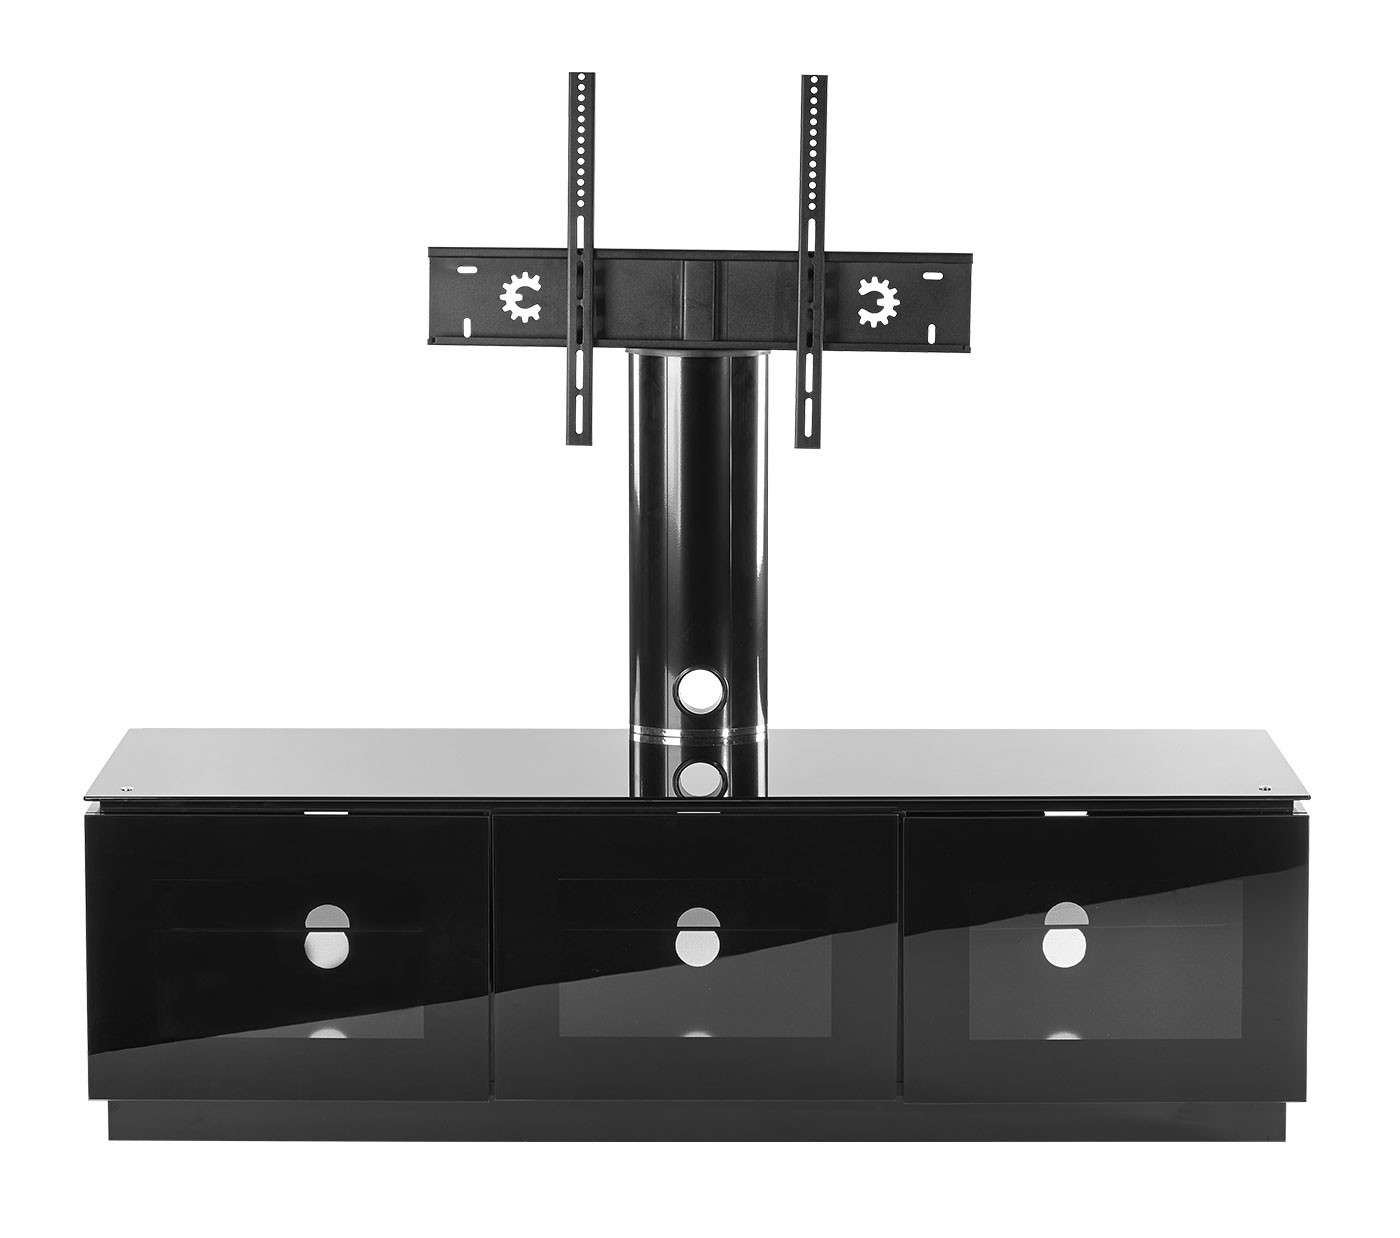 Black Tv Cabinet With Mount For Up To 65 Inch Tv | Mmt D1500 Xarm Intended For Black Gloss Tv Cabinets (View 7 of 20)